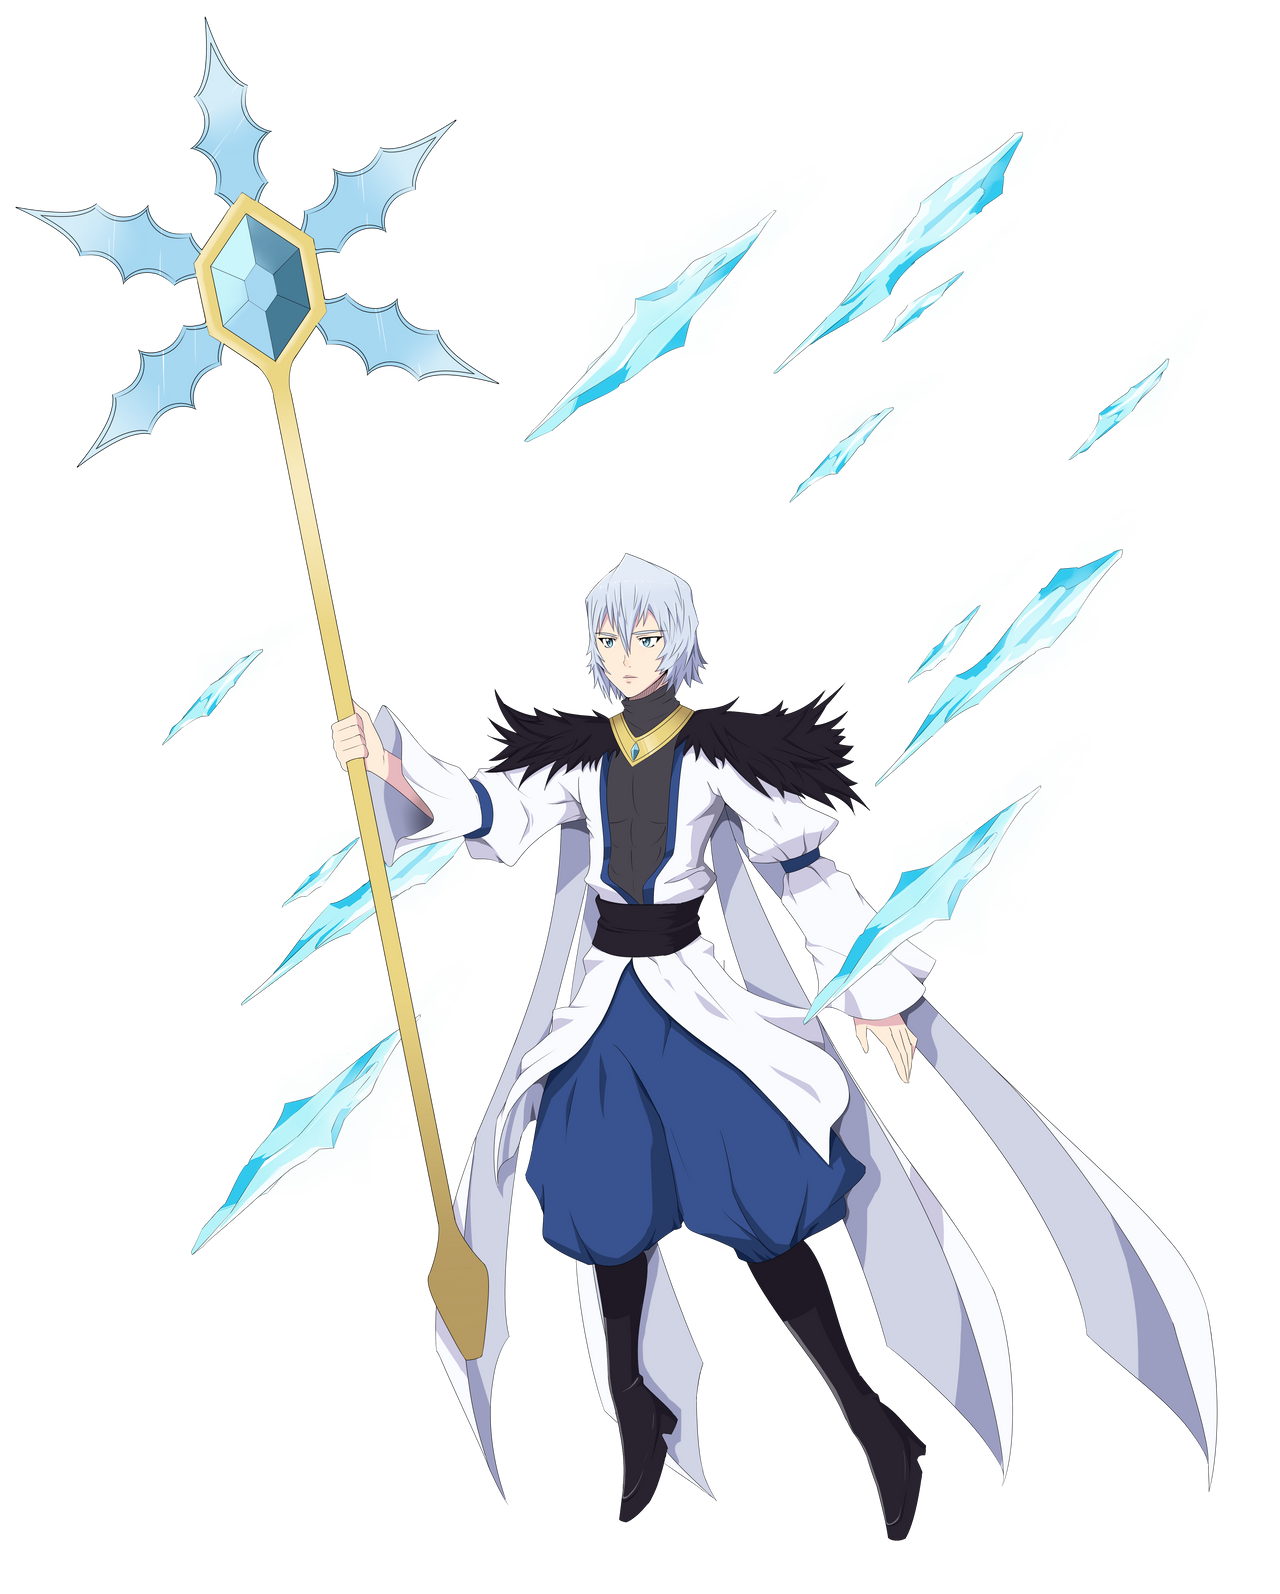 Anime Ice Mage Ice mage vilhelm byIce Mage Anime